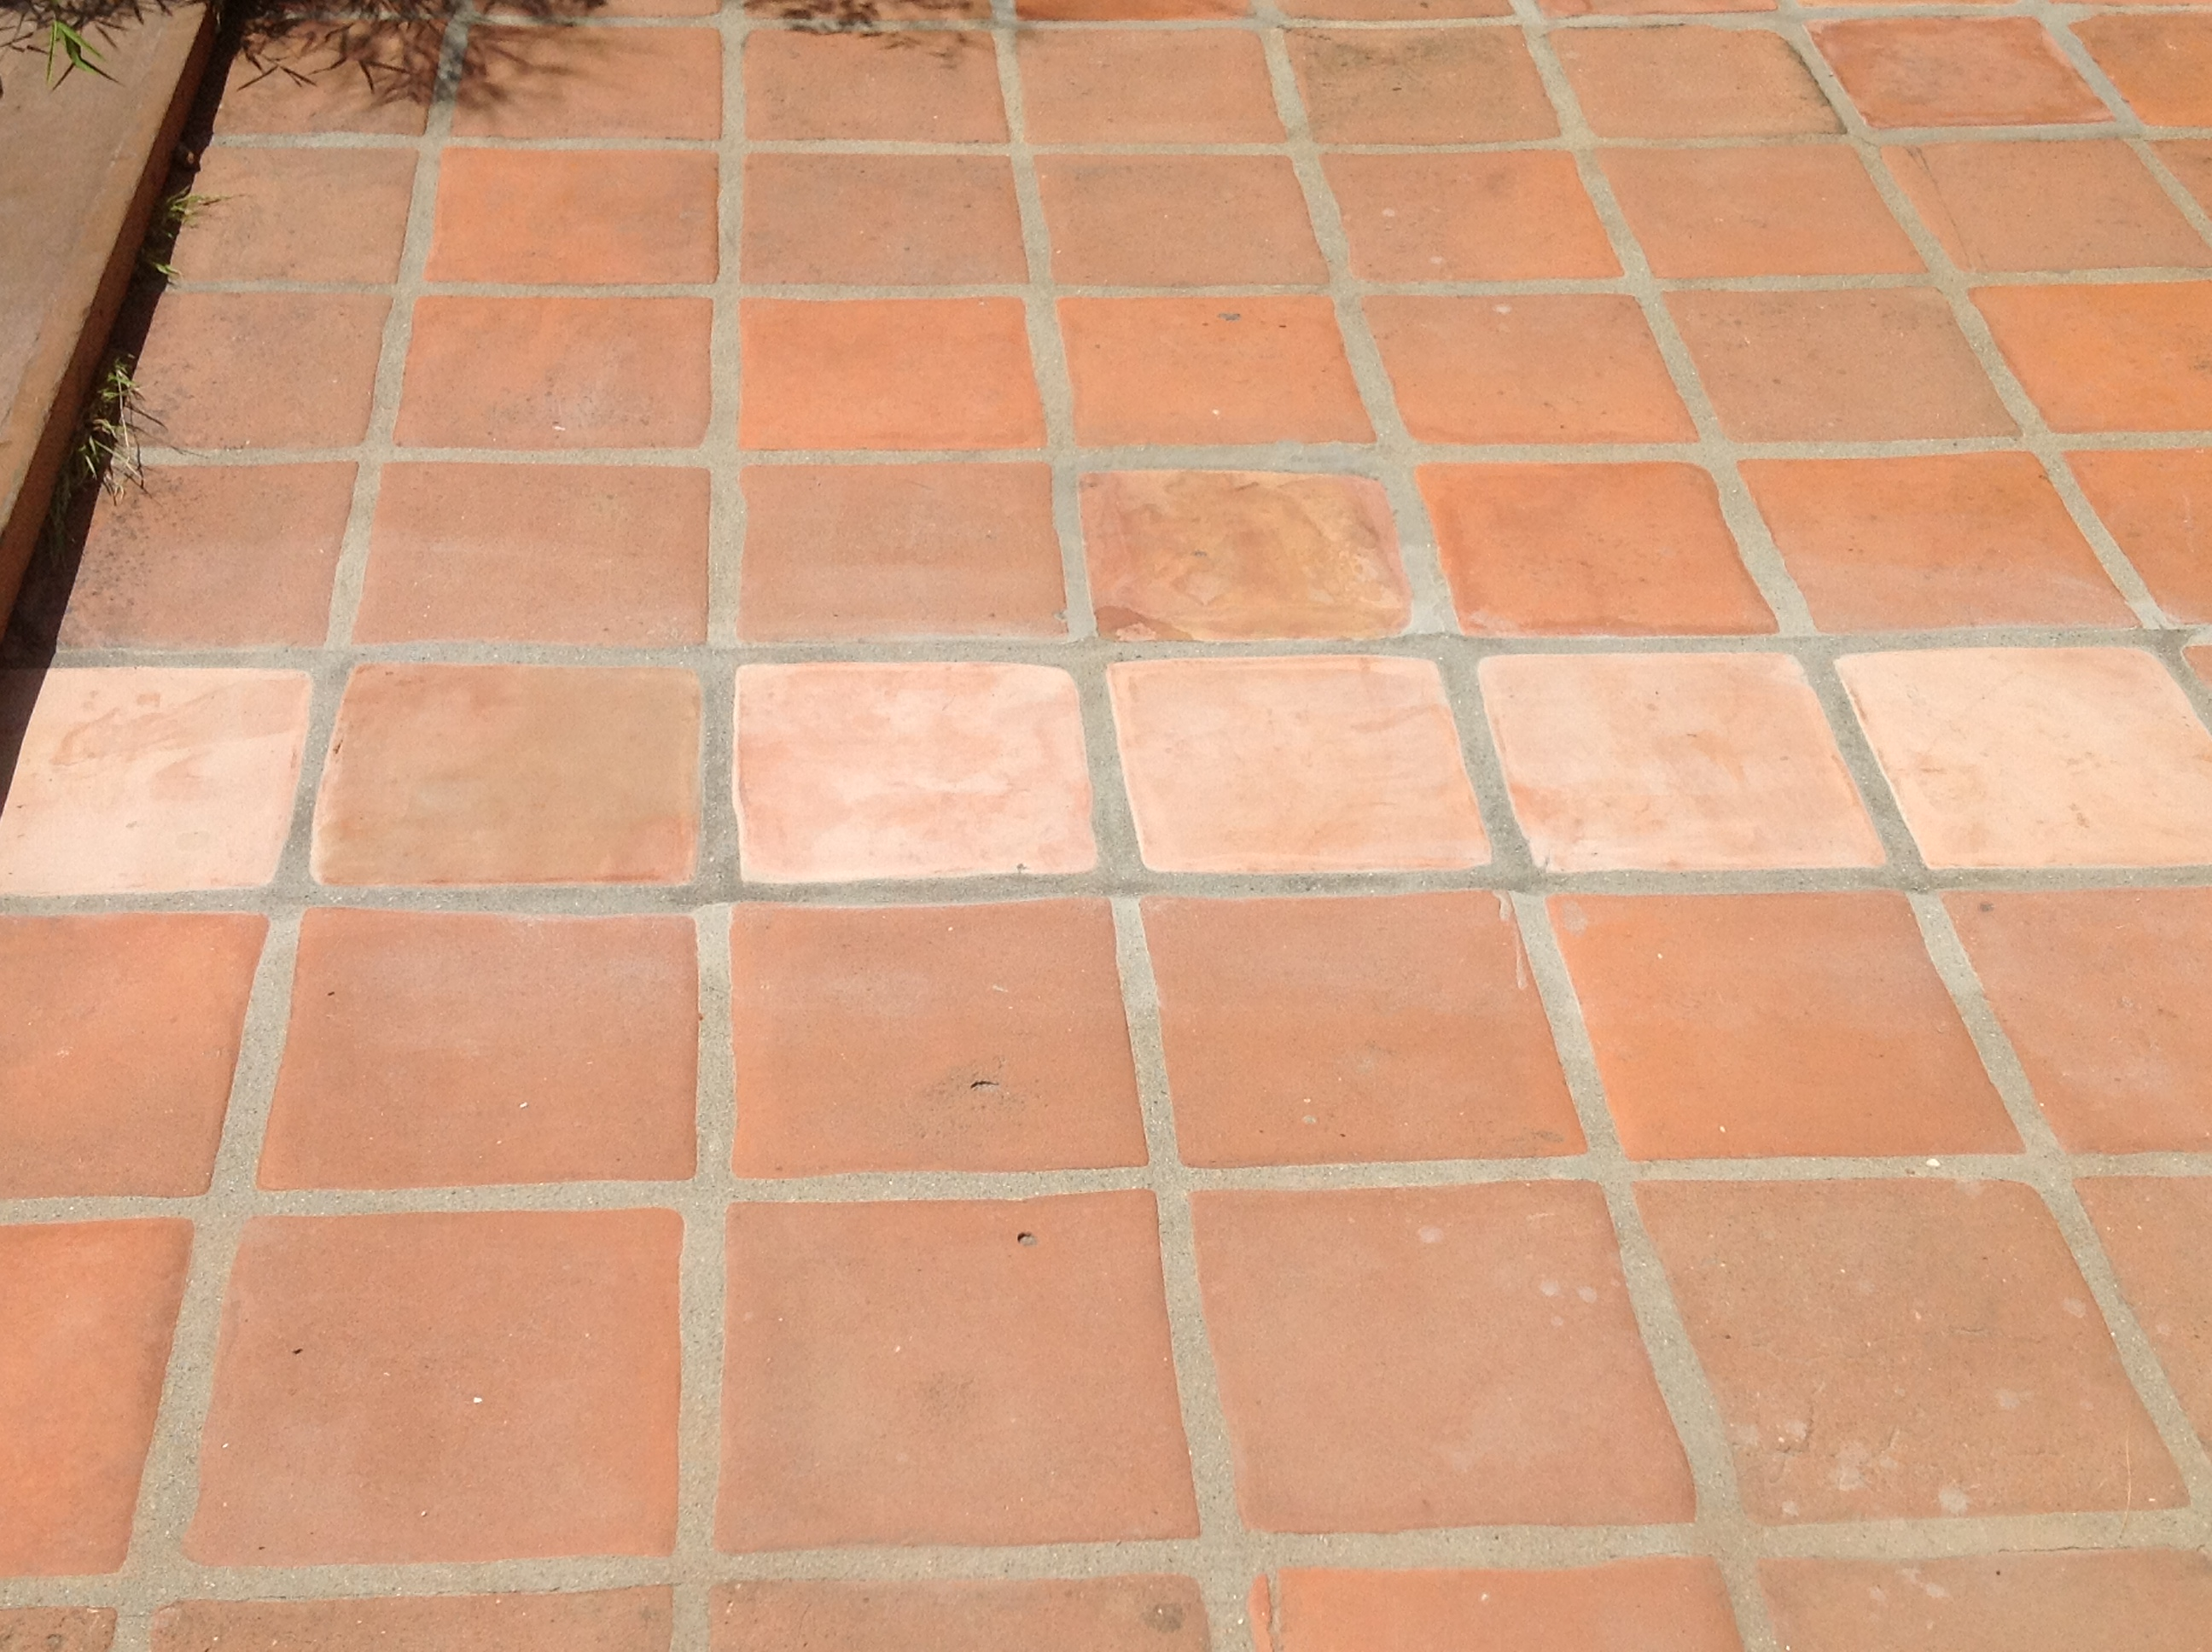 Staining Lincoln Amp Tecate Pavers To Match Existing Floor